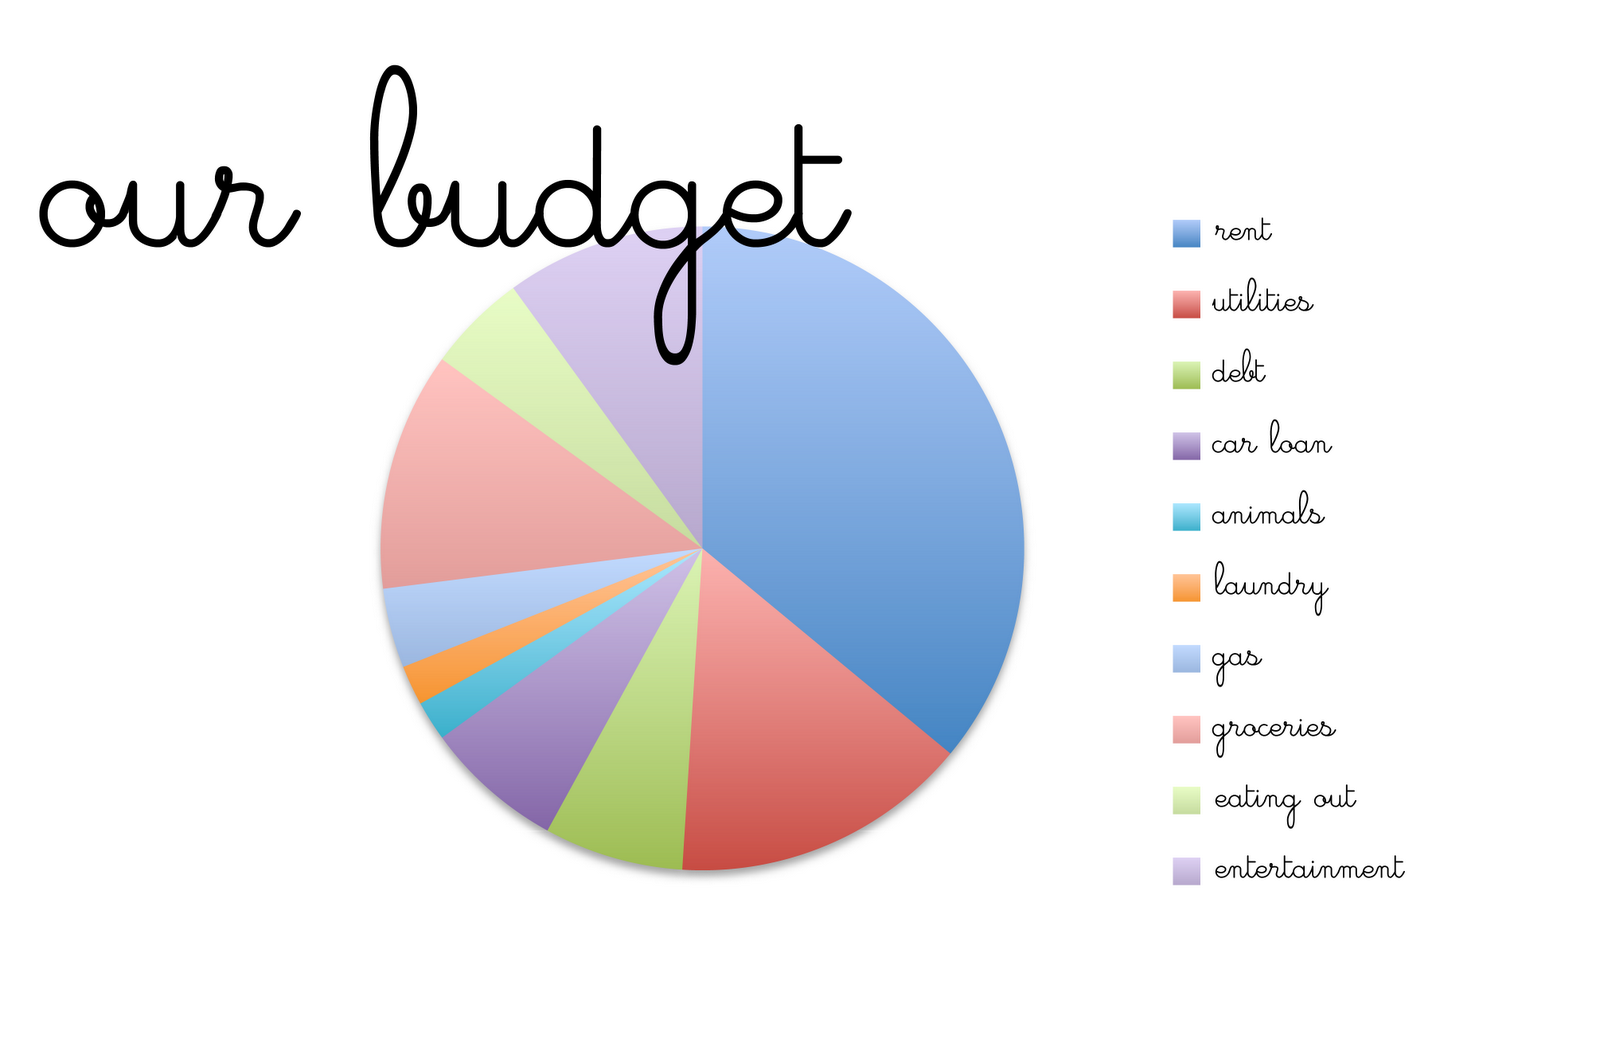 Family budget pie chart gallery free any chart examples family budget pie chart gallery free any chart examples family budget pie chart choice image free nvjuhfo Image collections